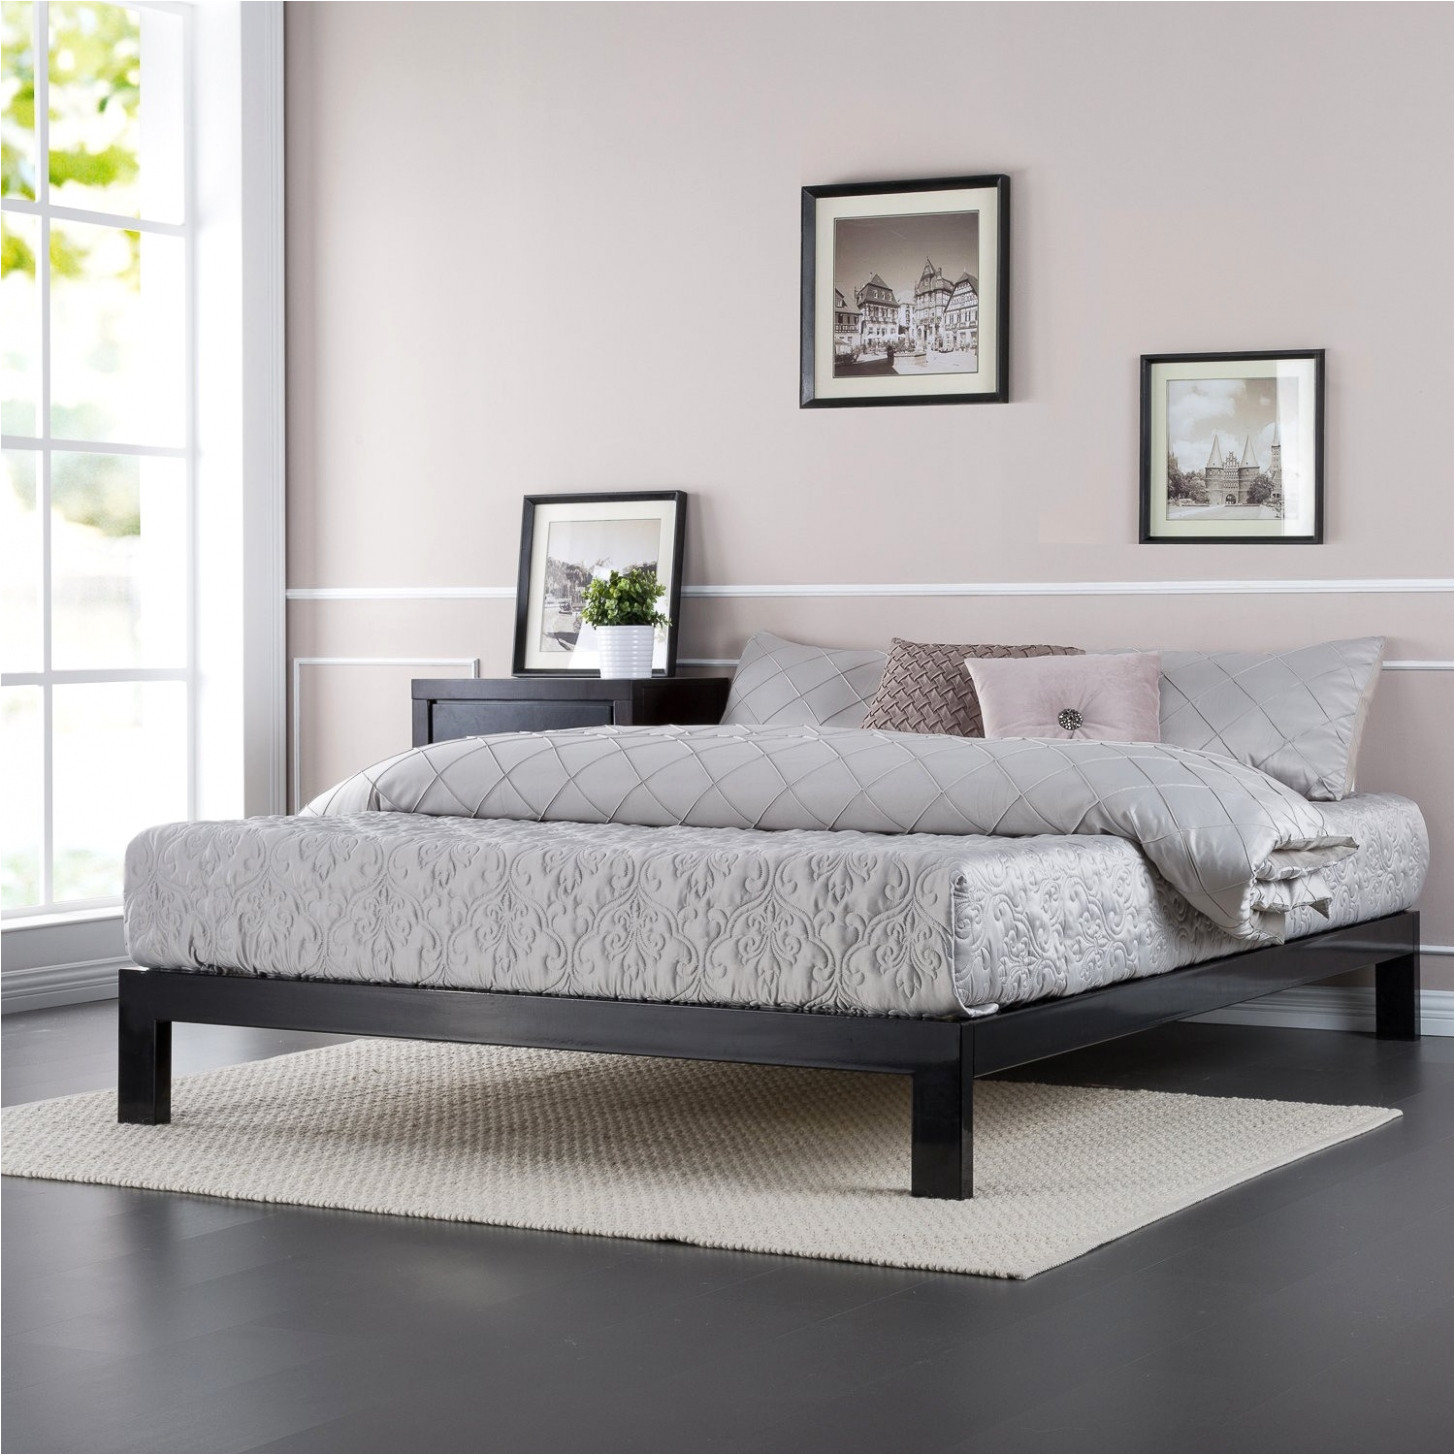 Difference In Slatted Bed Base Ikea Queen Size Bed Frame Rabbssteak House